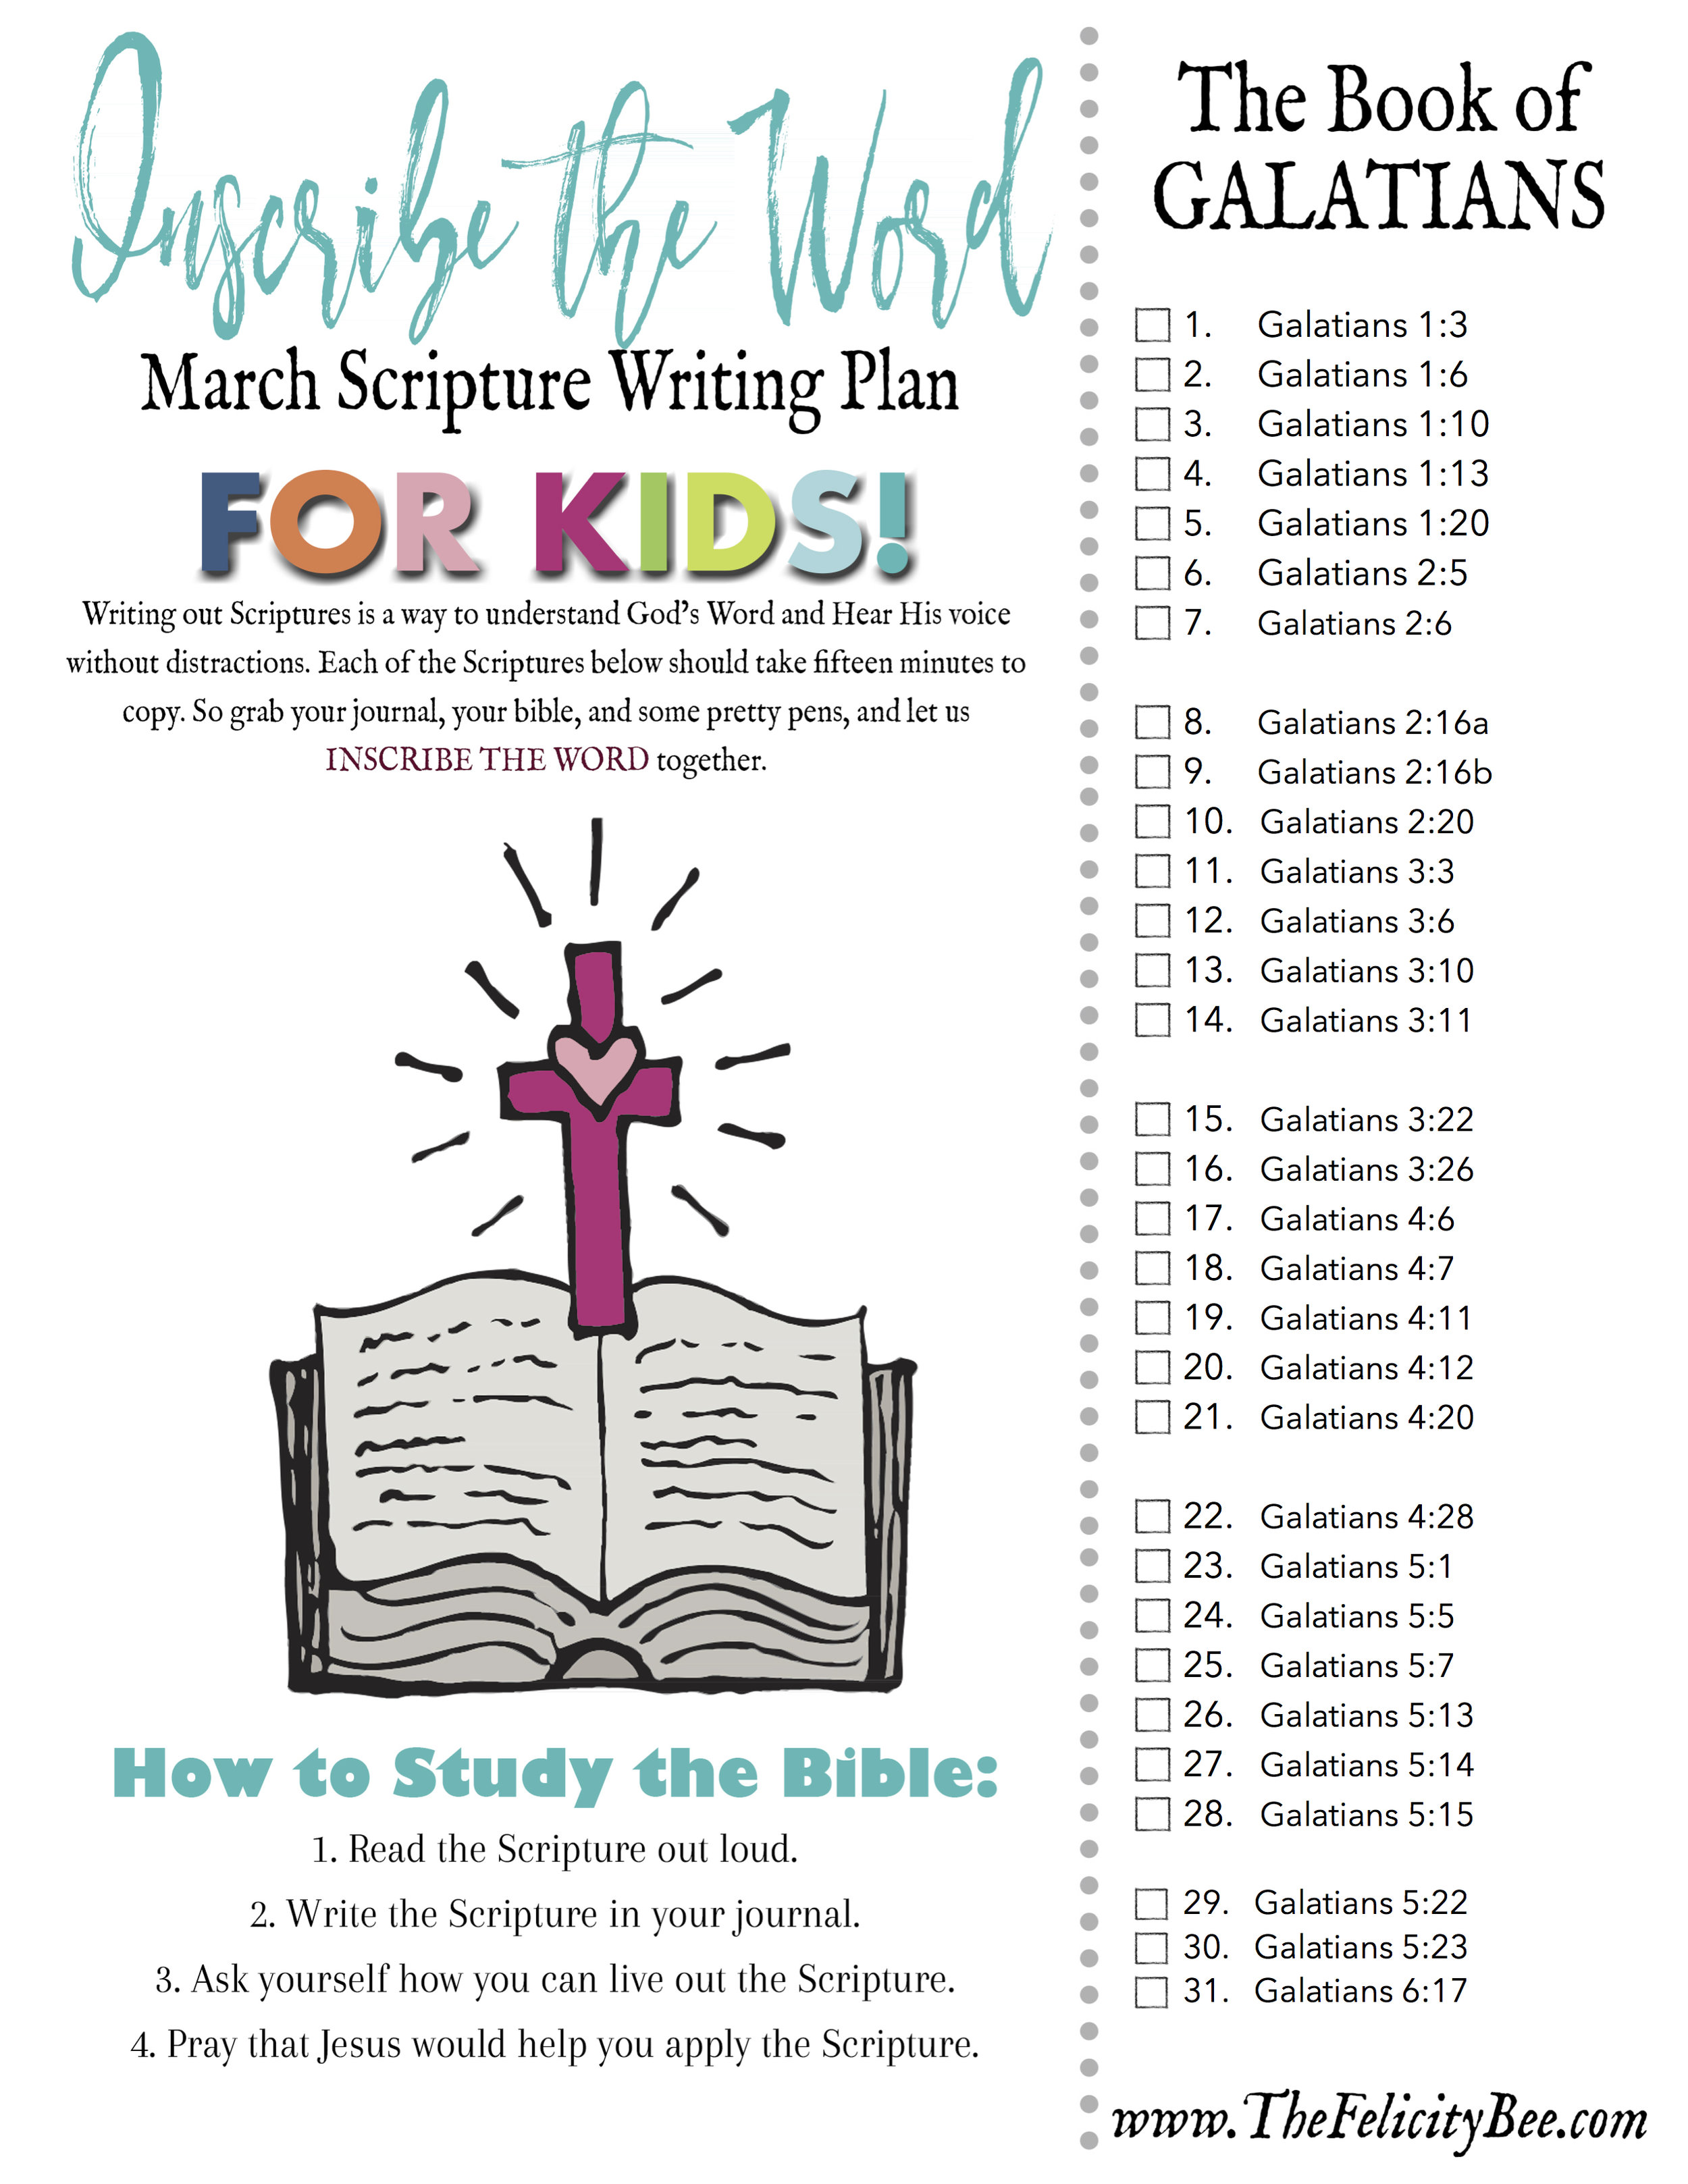 CLICK HERE TO DOWNLOAD  YOUR KIDS MARCH SCRIPTURE WRITING PLAN.